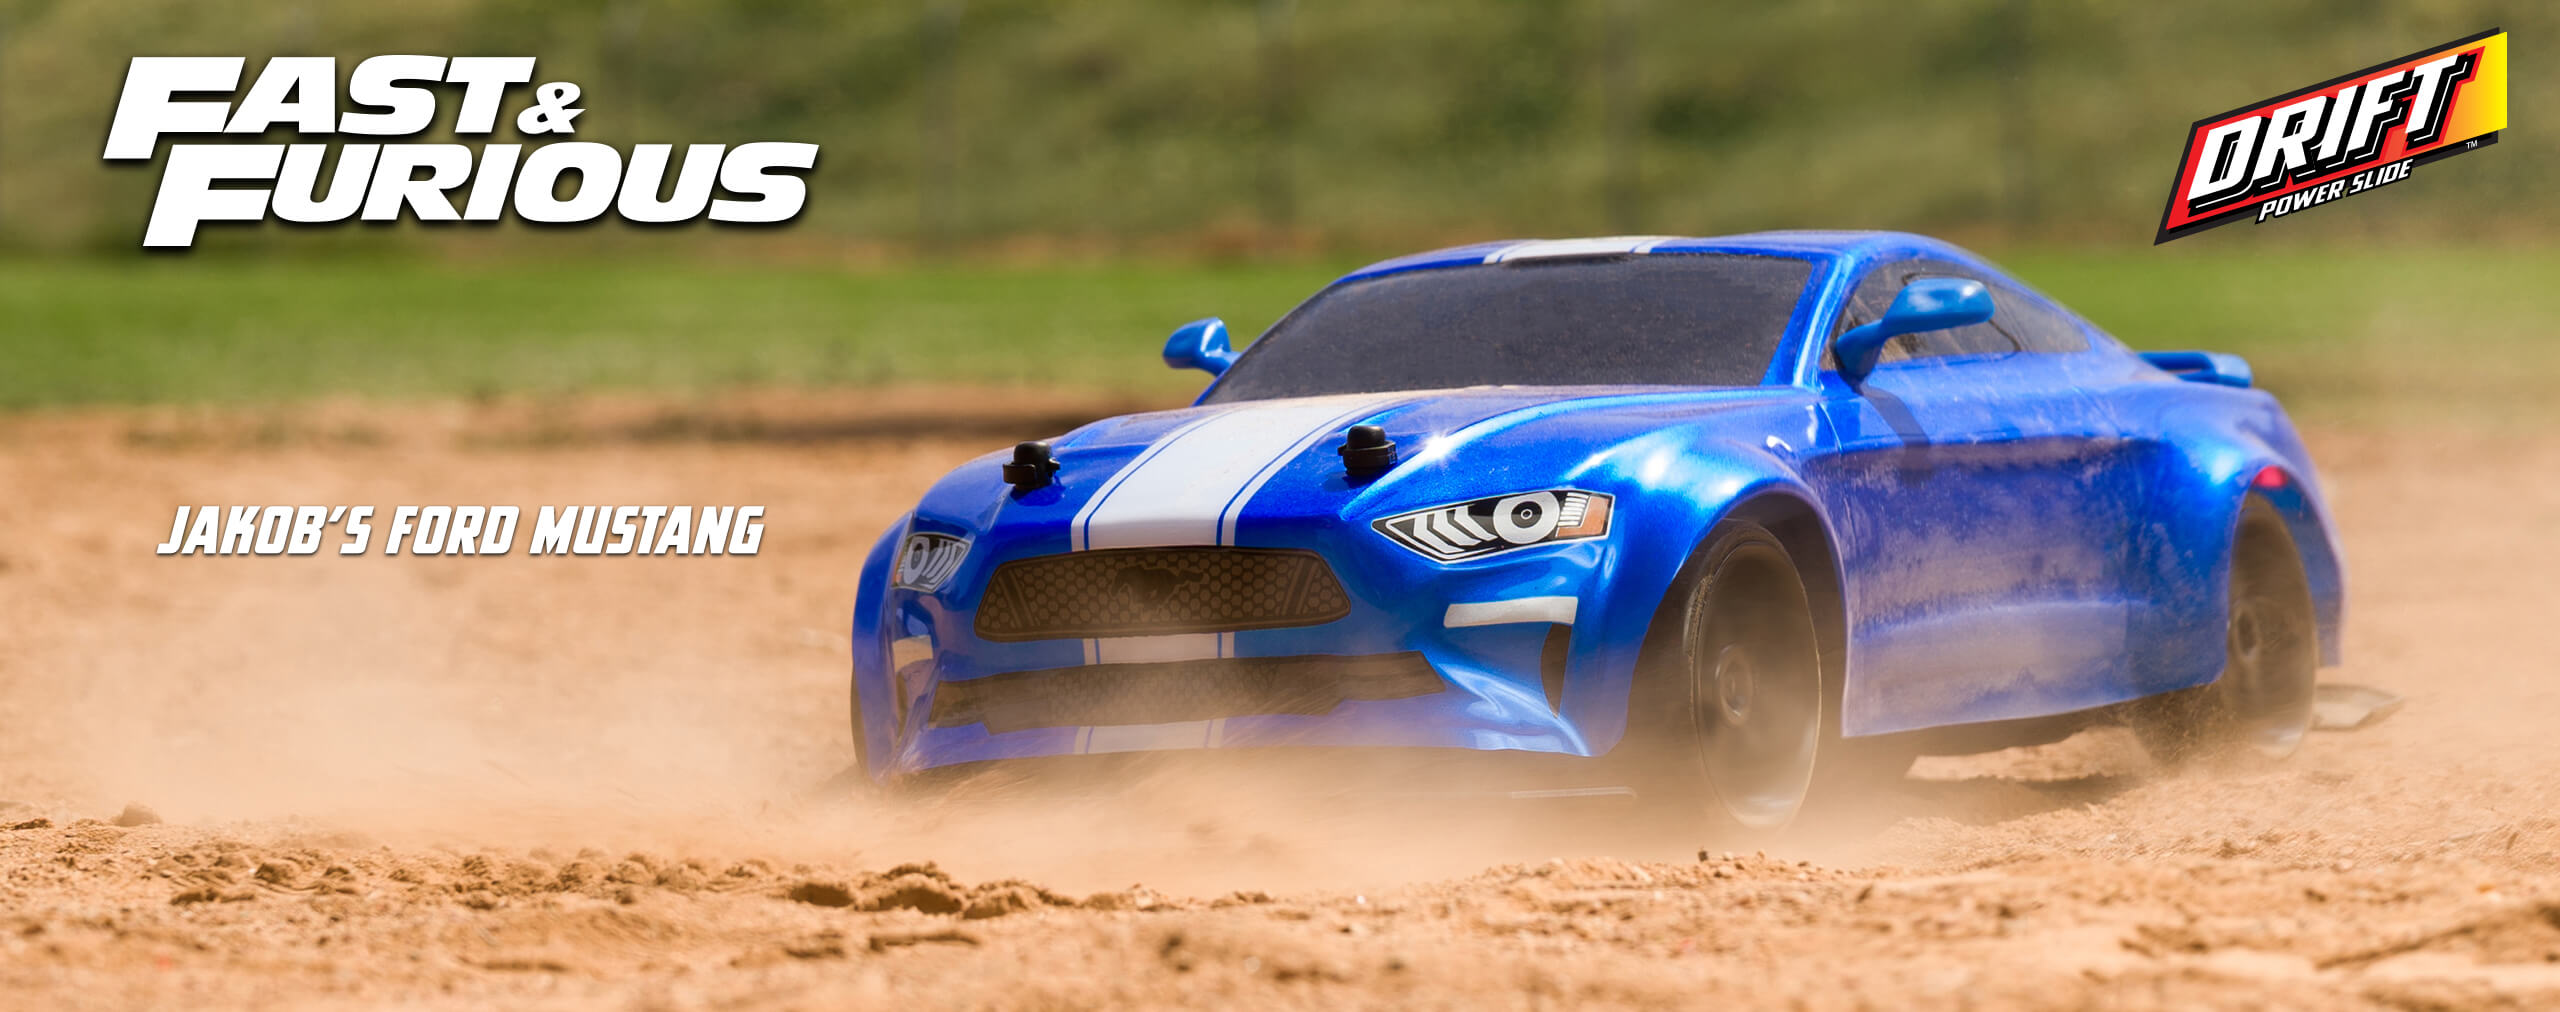 Fast & Furious Drift - Jakob's Ford Mustang